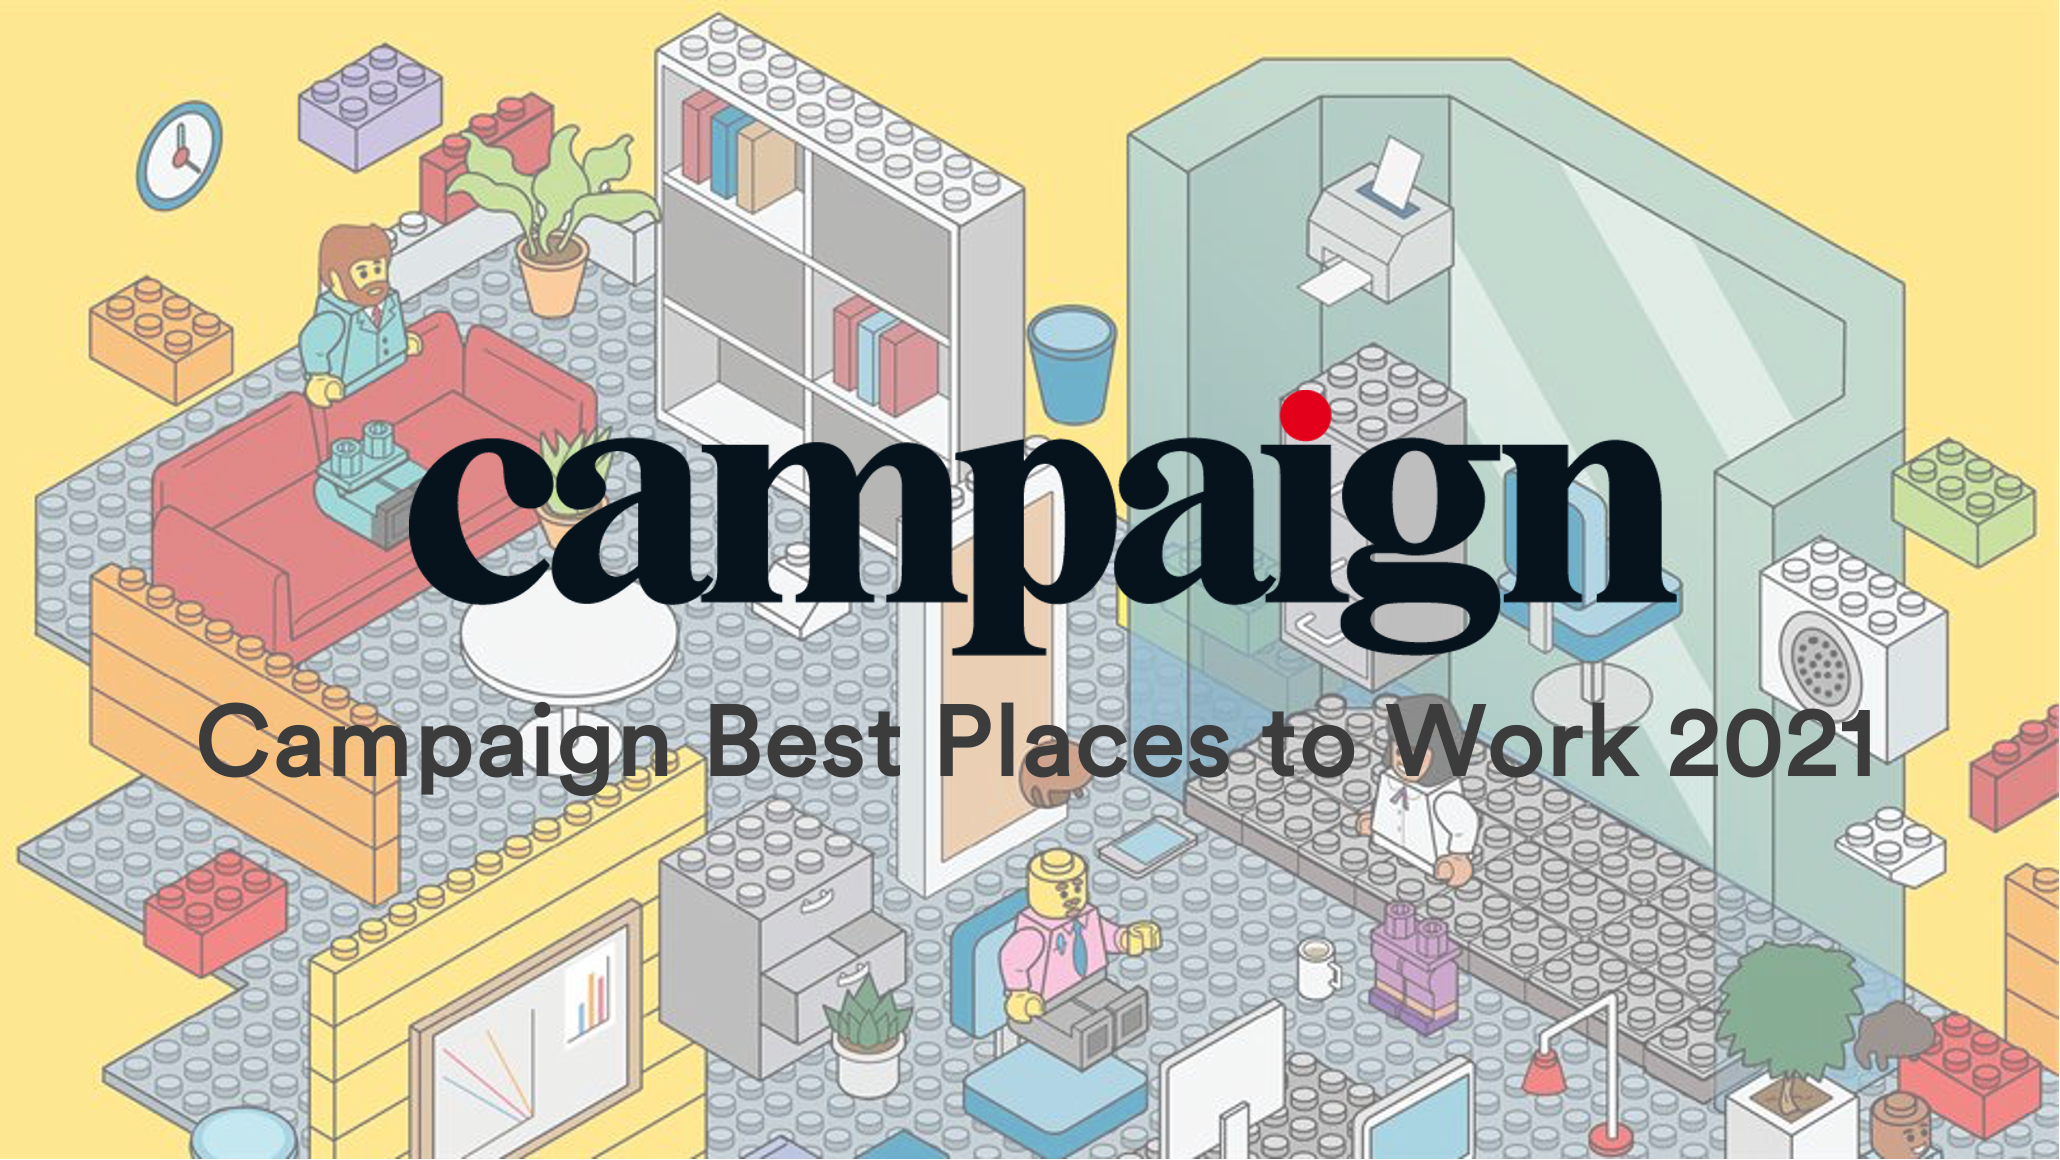 Campaign's best places to work 2021